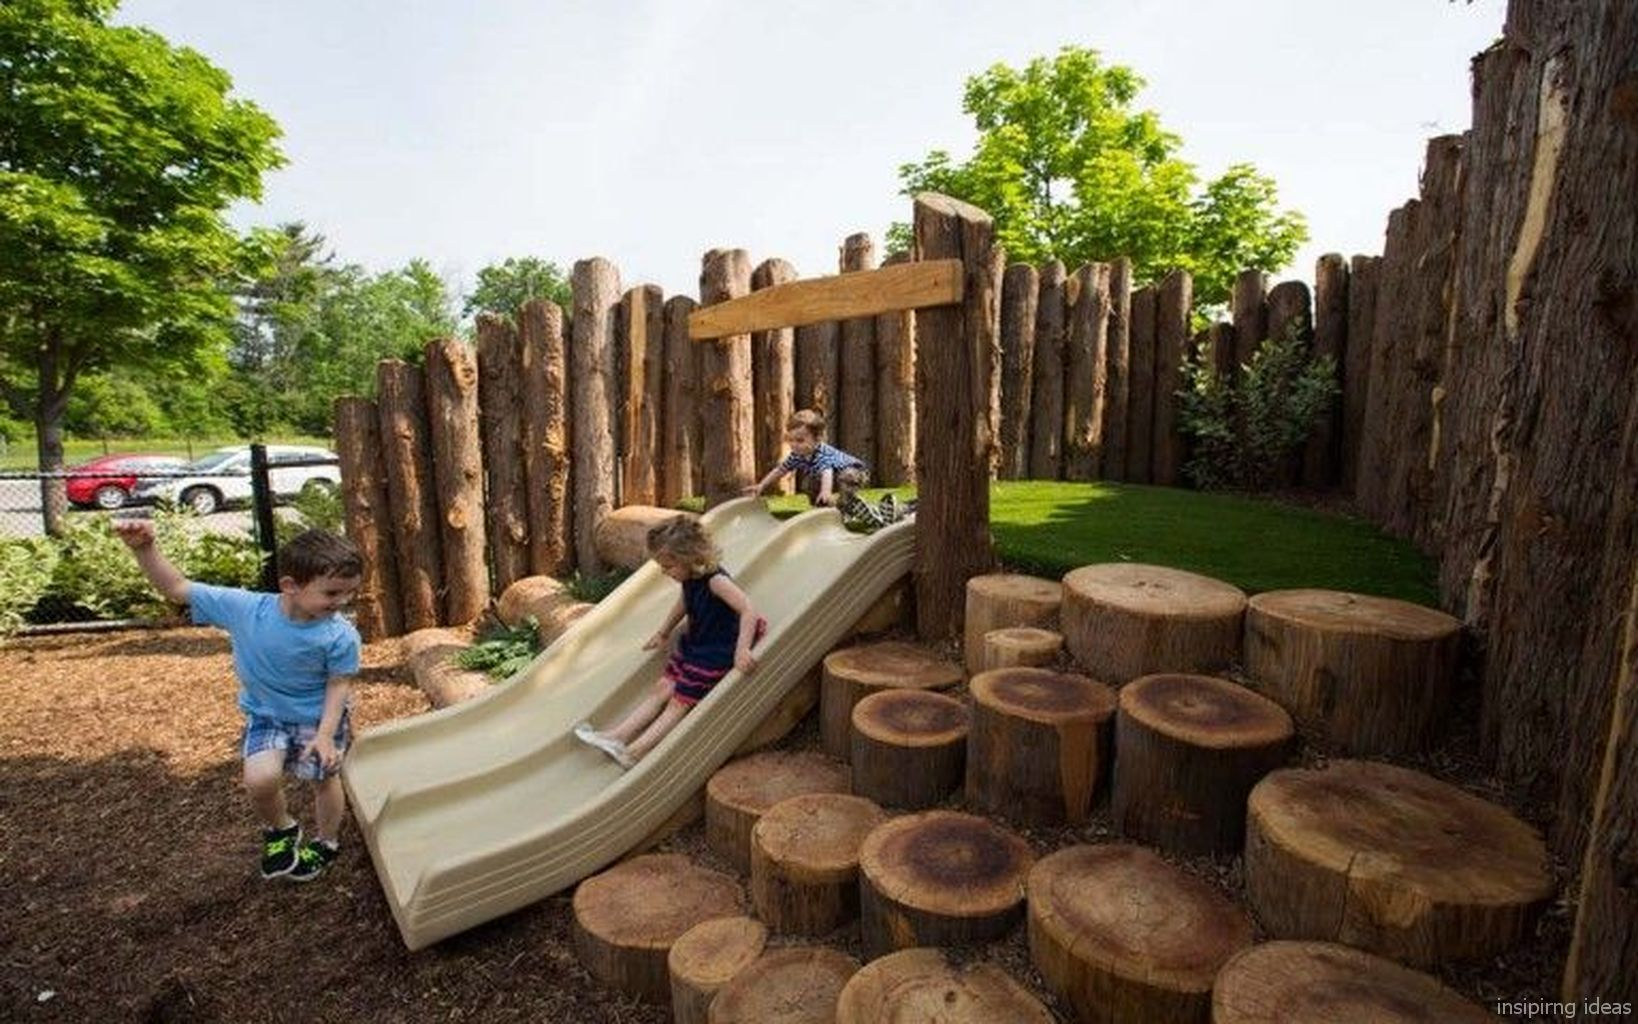 Pin by Roomaholic.com on DIY, Craft and RV Campers in 2019 ... Natural Playground Ideas Backyard on natural sandbox ideas, natural playground with tree stumps, natural playground design, natural play ground ideas, natural home playground, natural playground treehouse, natural playhouse ideas,